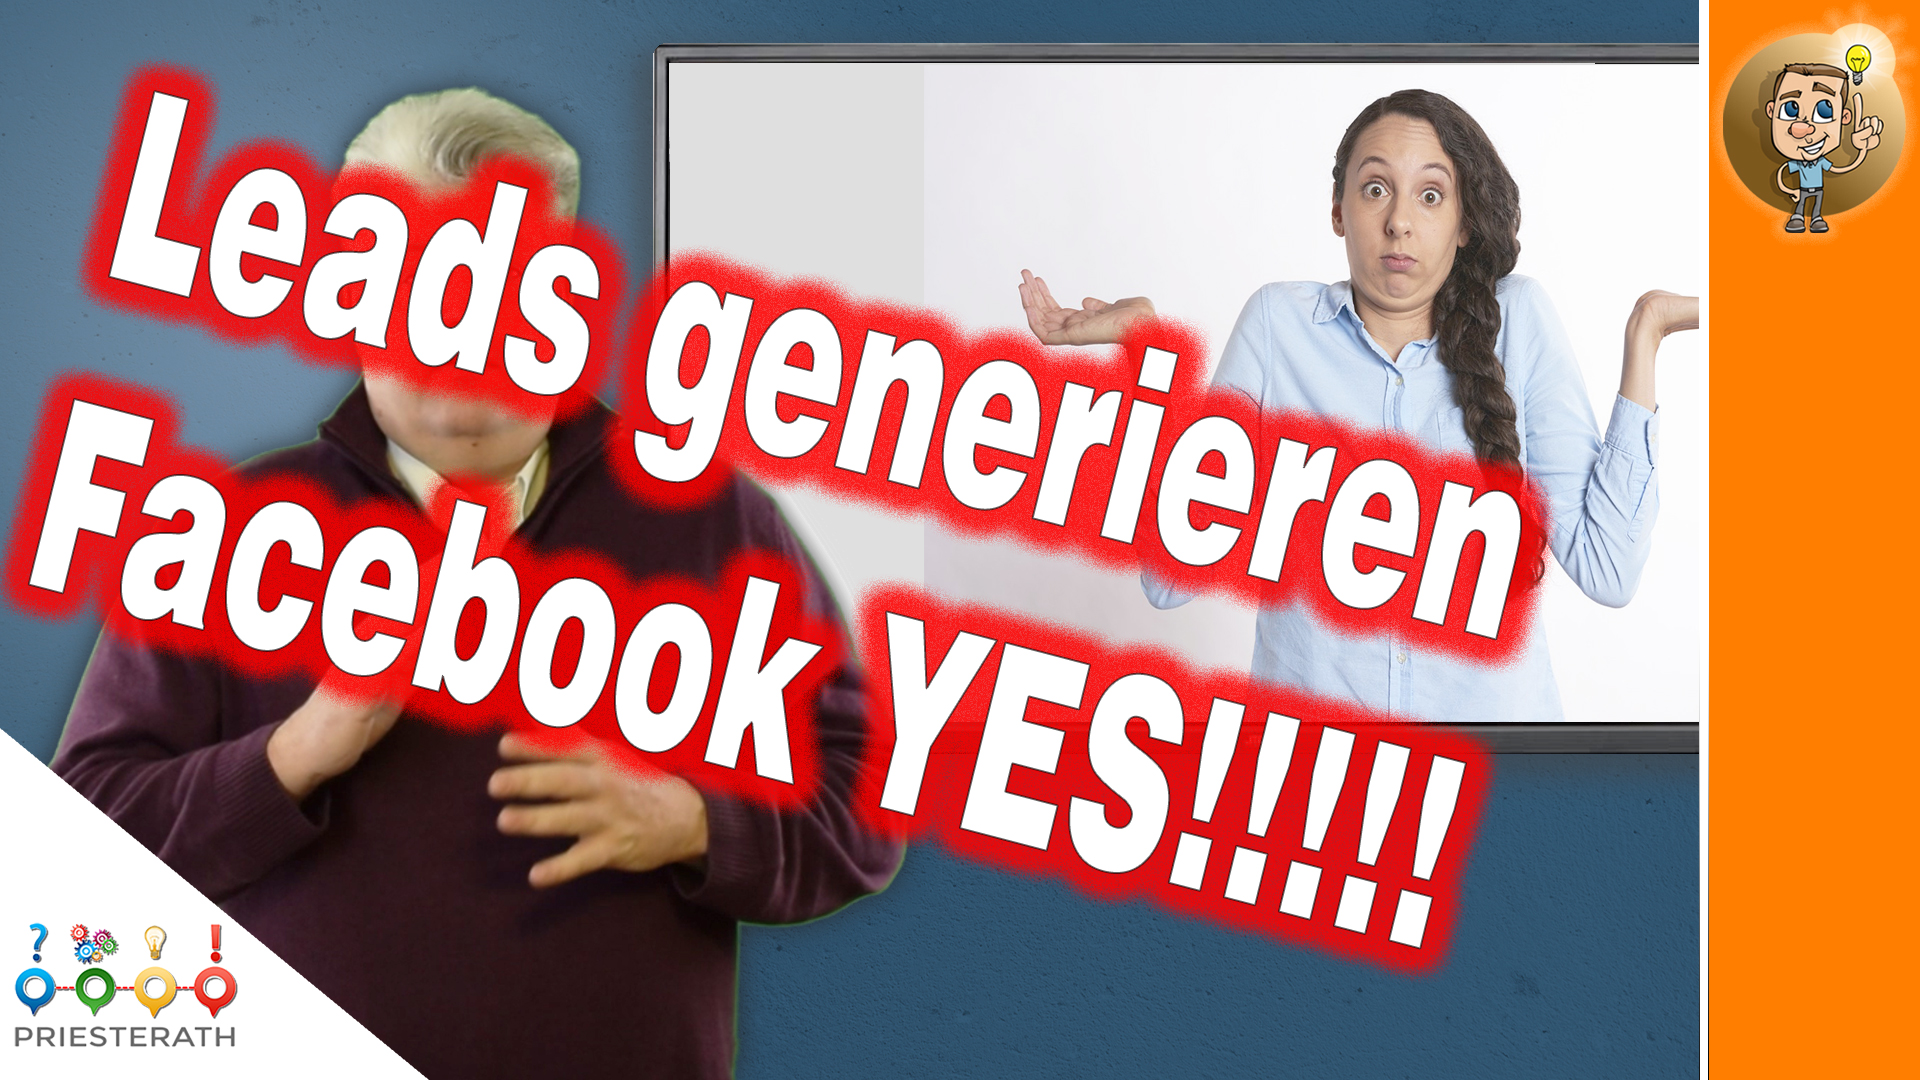 Leadgenerierung 2021 Facebook is the place to be